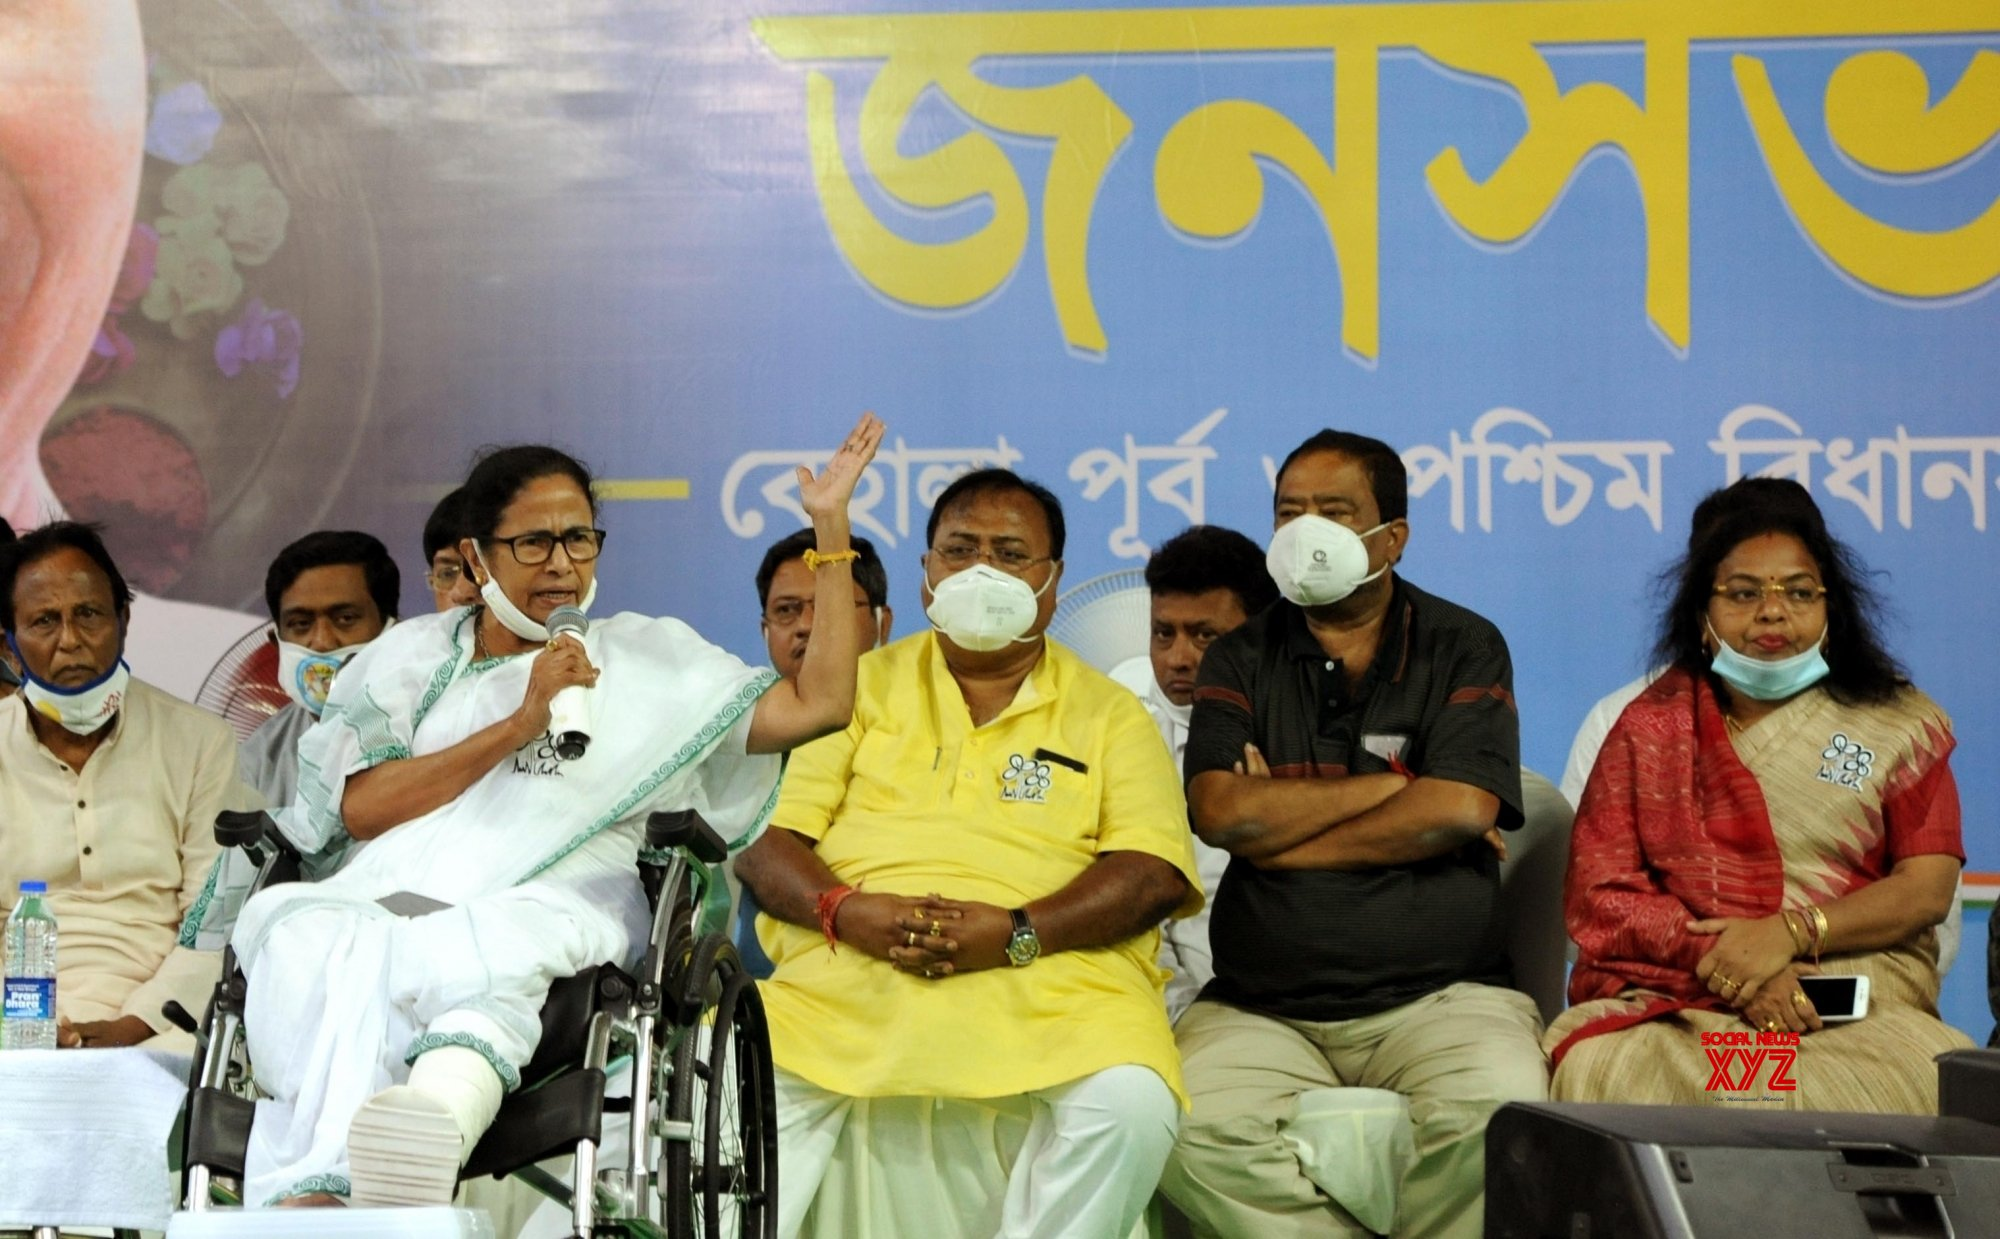 Kolkata: West Bengal Chief Minister Mamata Banerjee at a public meeting ahead of the 4th phase of the State Assembly election at Behala in Kolkata on April 8, 2021. #Gallery